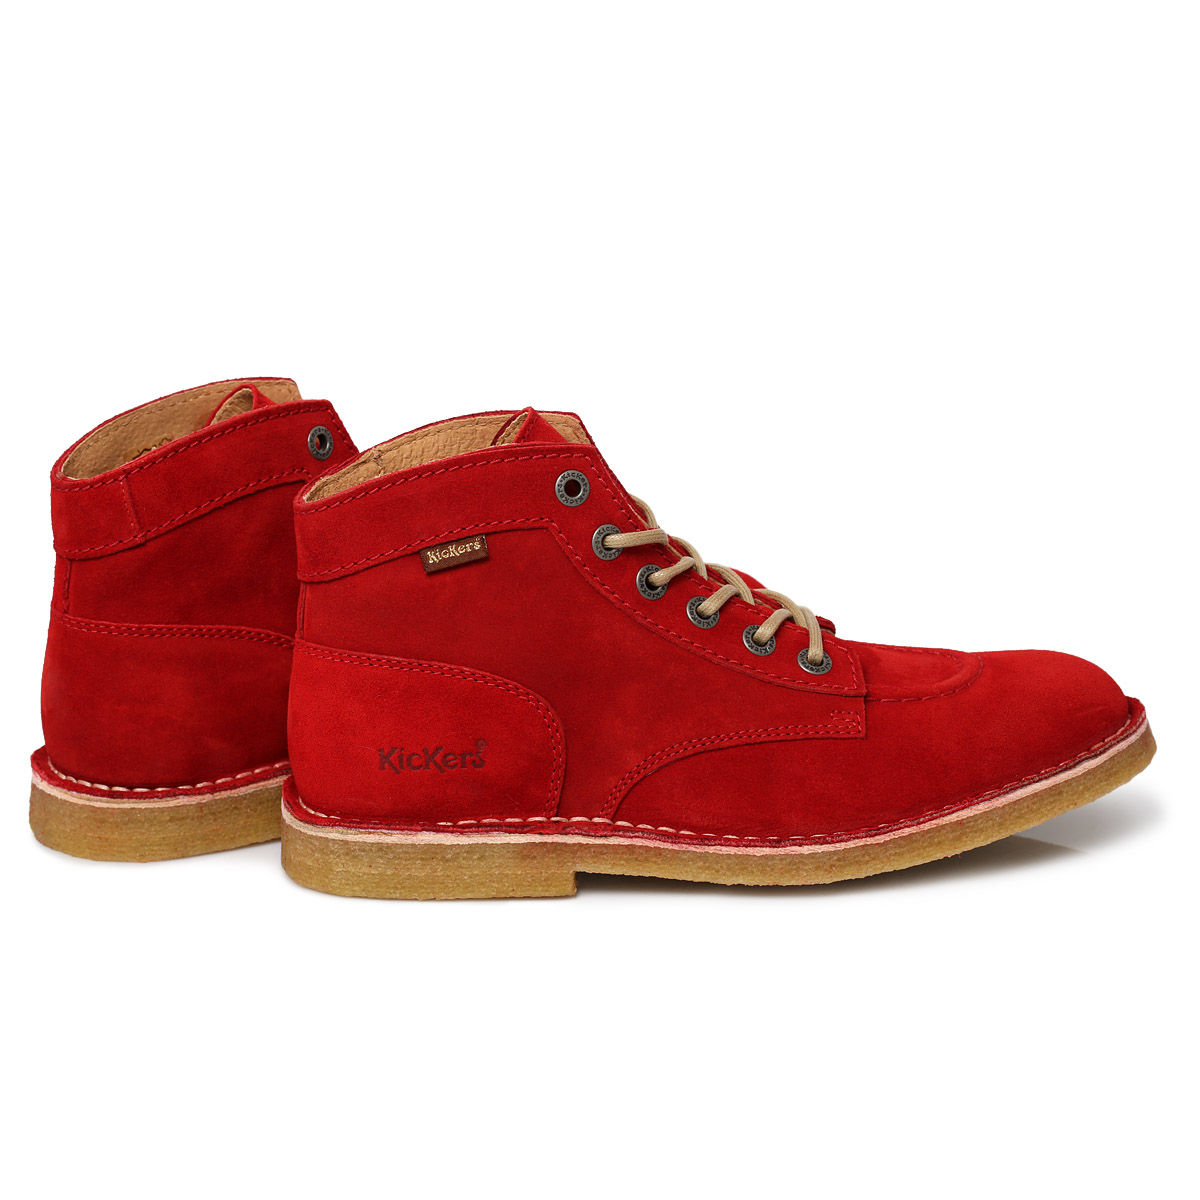 Mens Red Boots gPSIrI8e